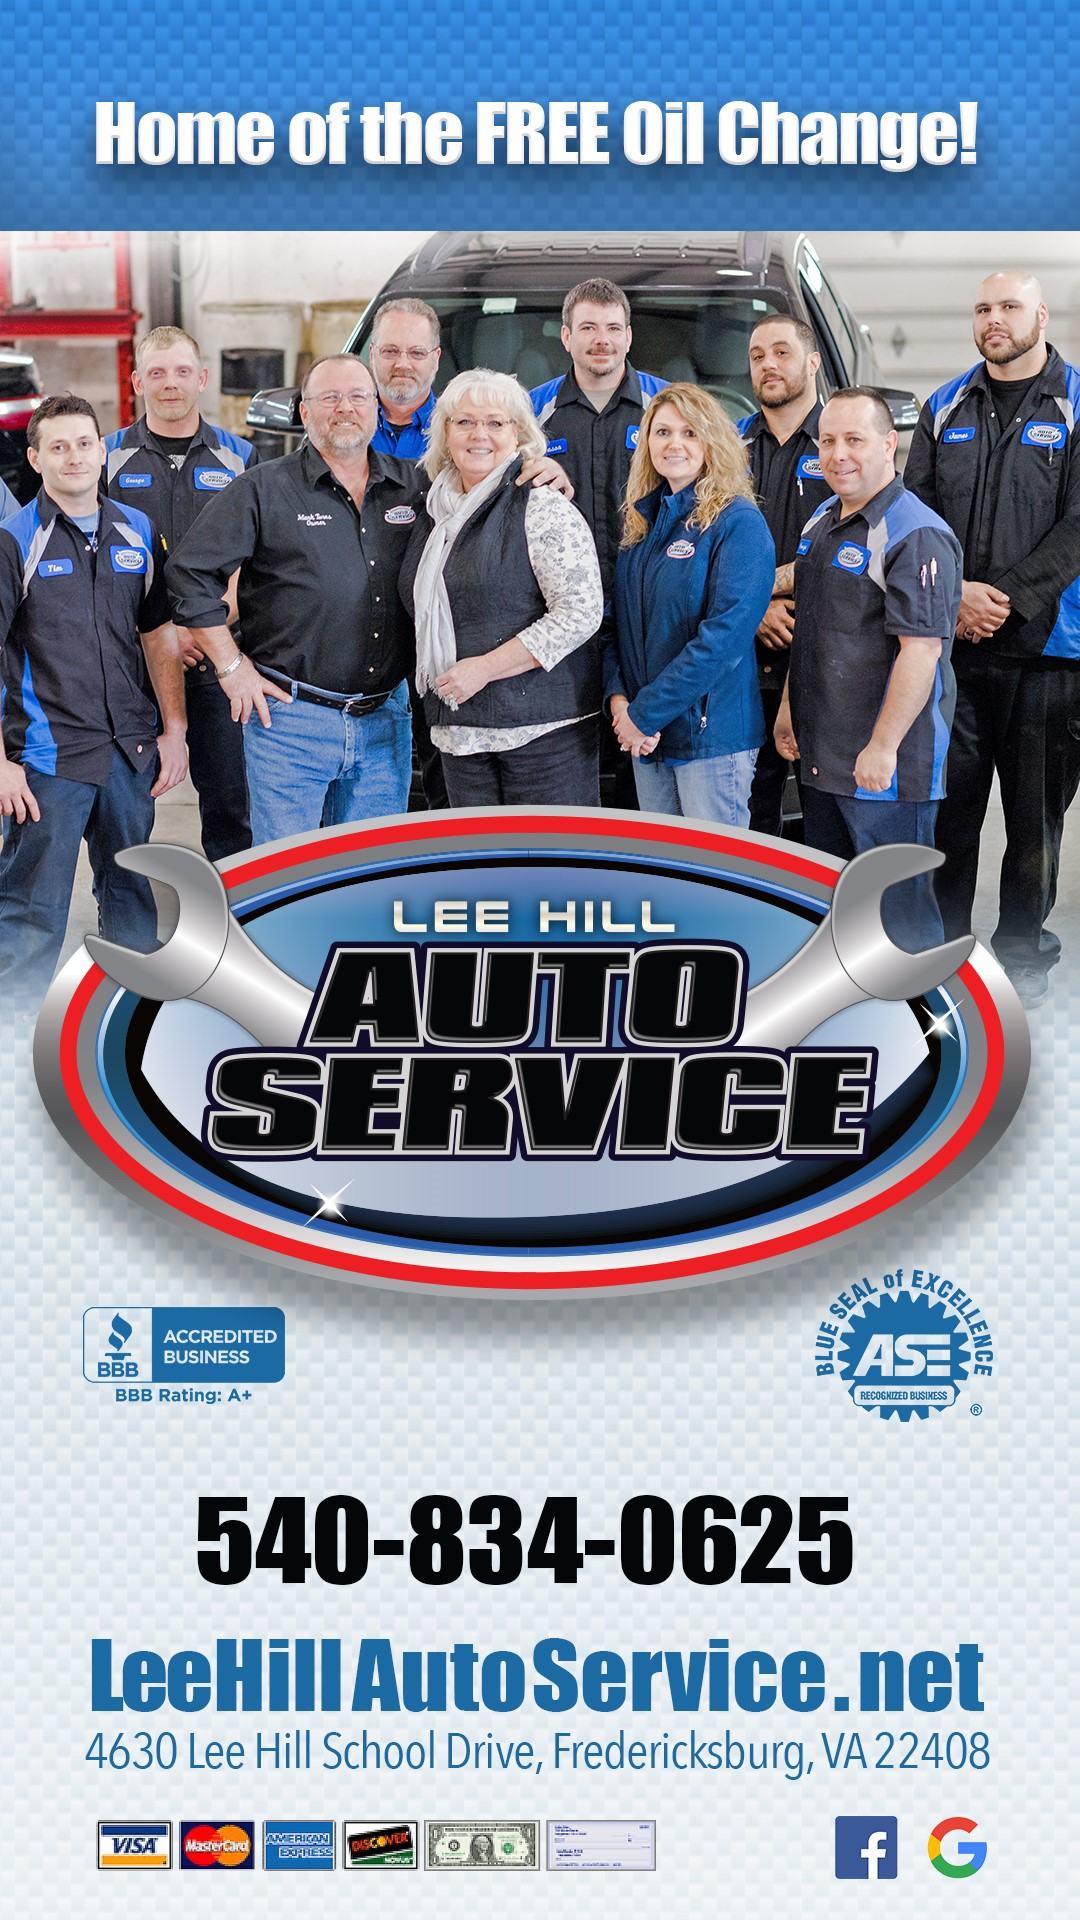 Lee Hill Auto Service Is Family And Veteran Owned We Are Our Community S Repair